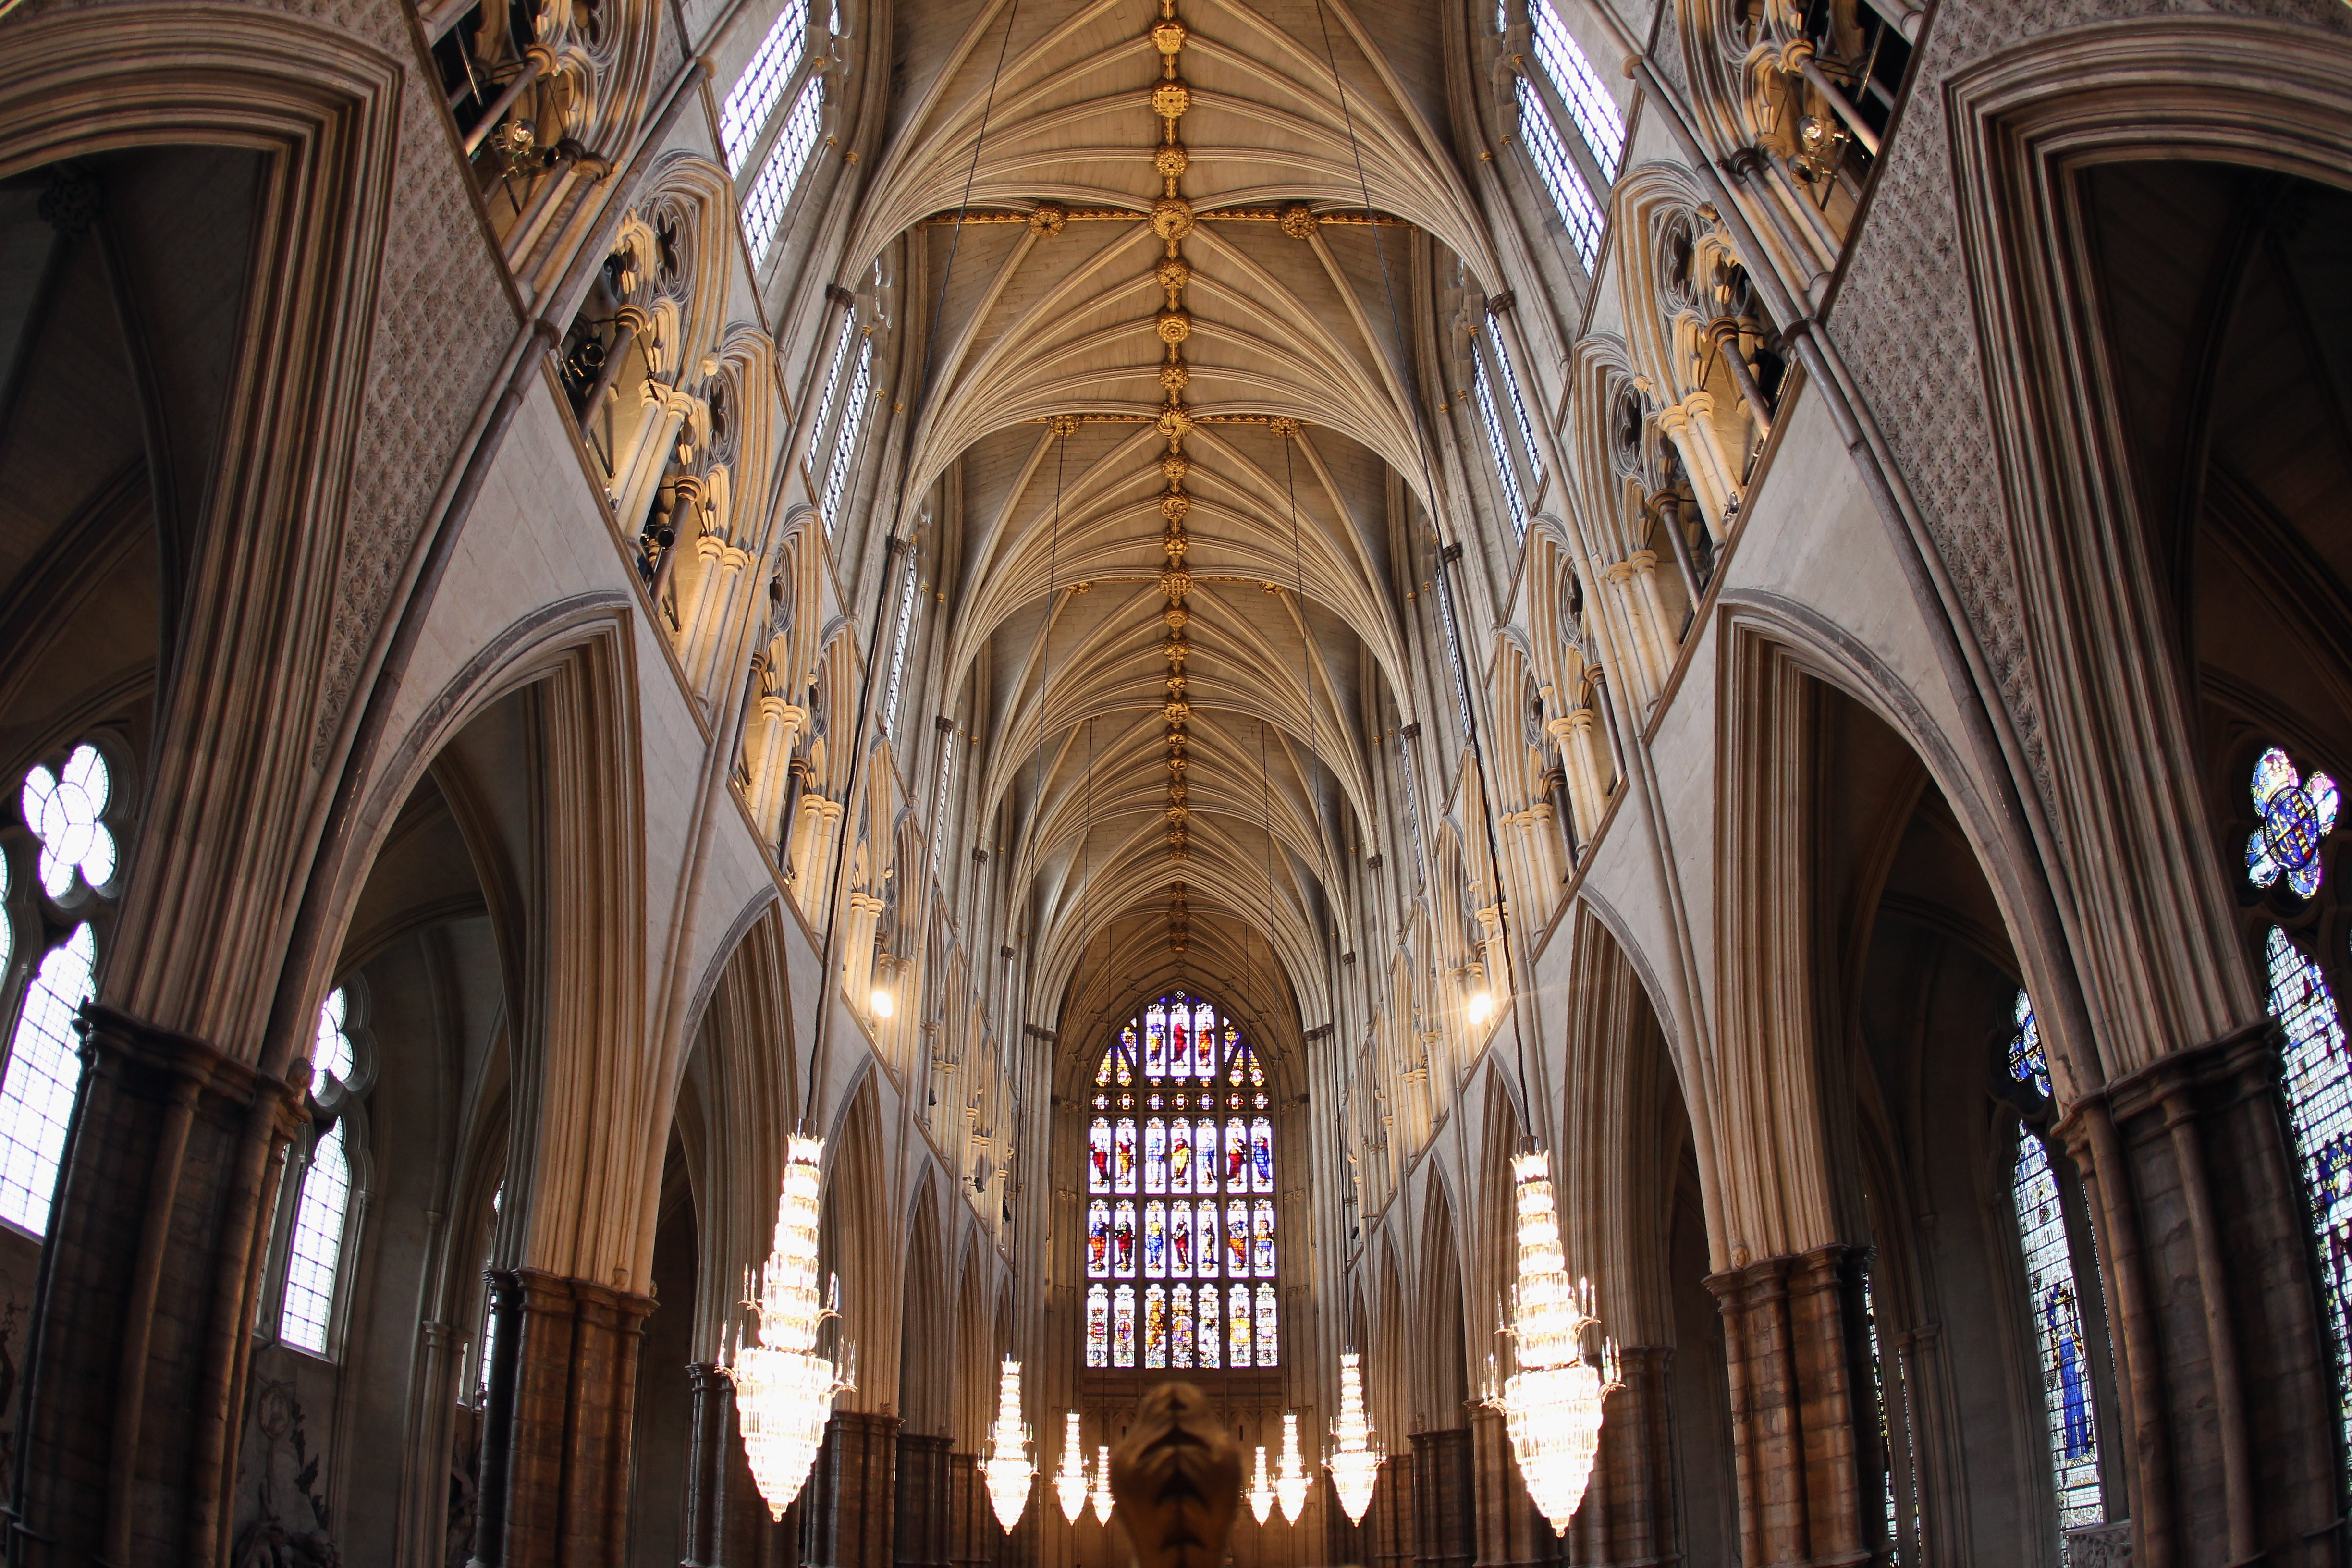 Westminster Abbey ceiling interior